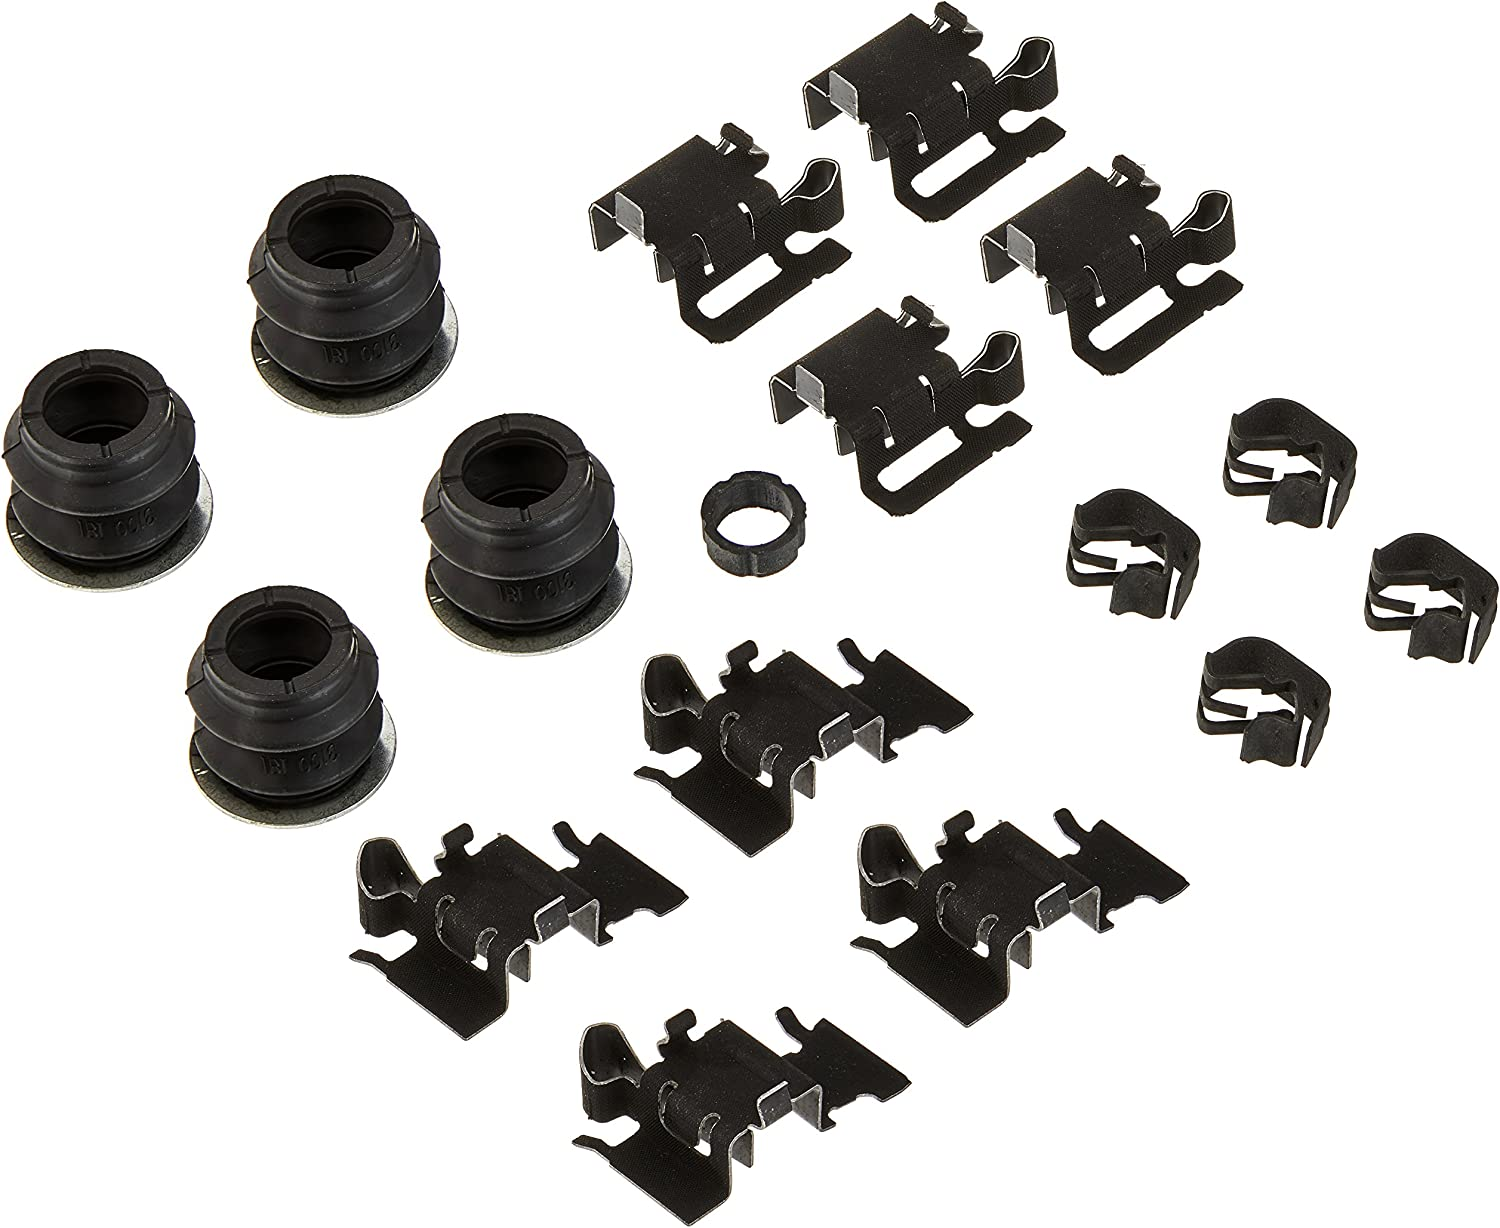 ACDelco 18K995 Professional Rear Parking Brake Hardware Kit